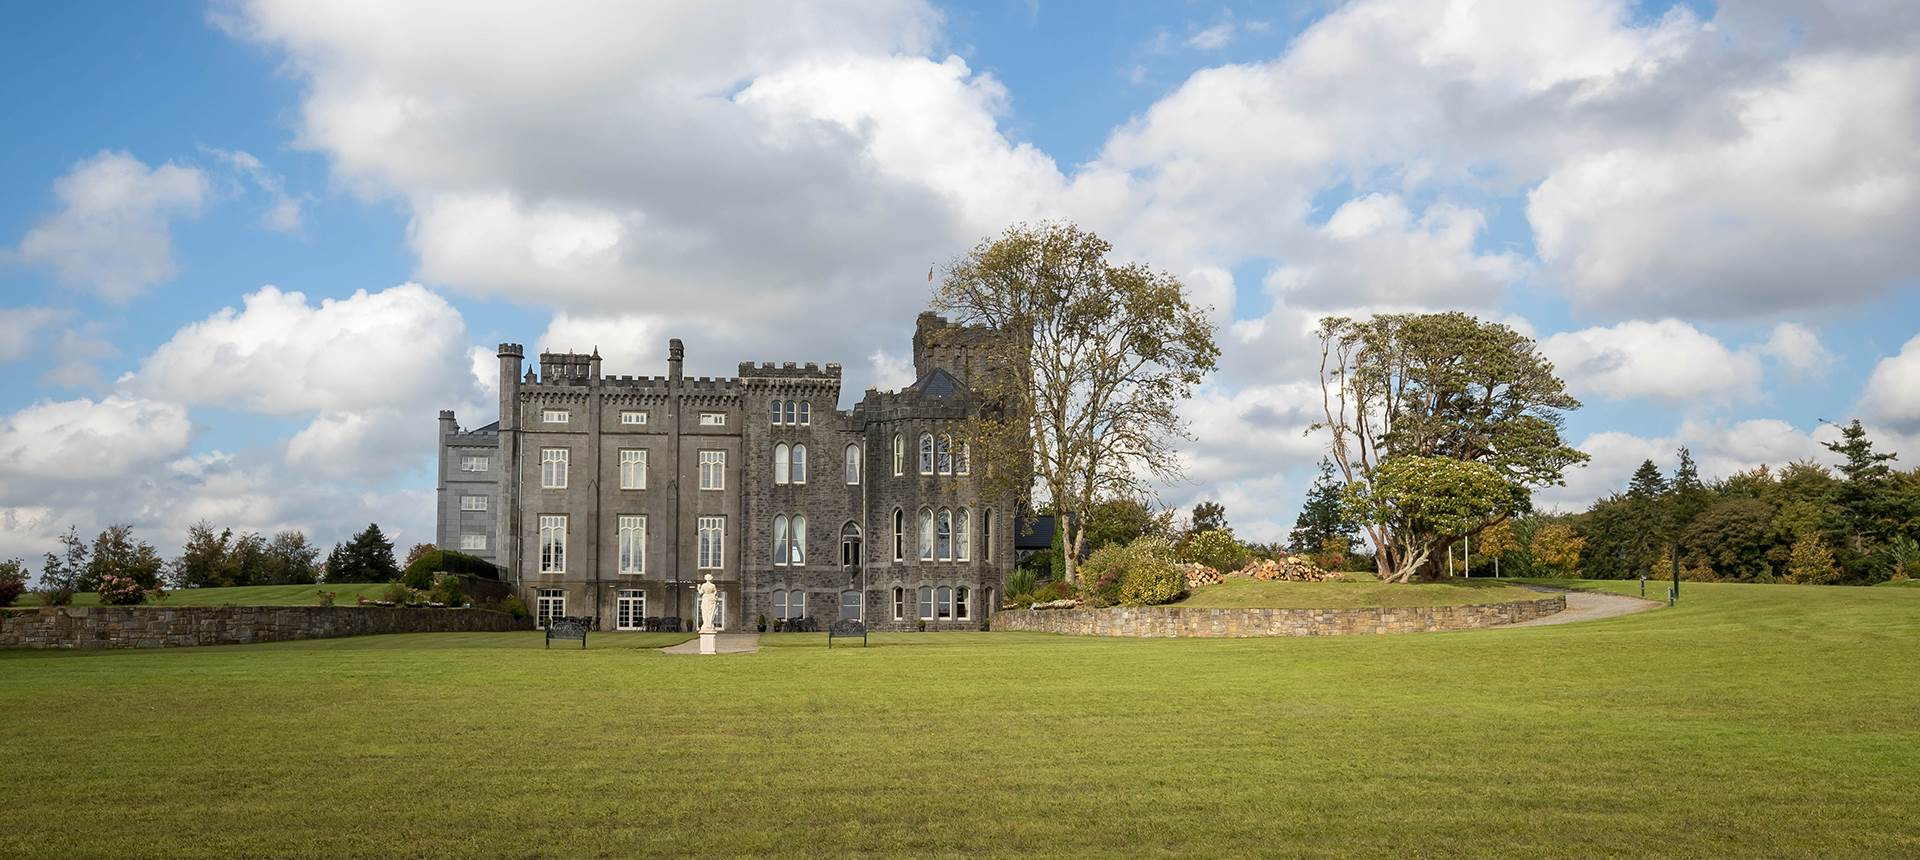 Kilronan Castle Estate and Spa in Roscommon Ireland